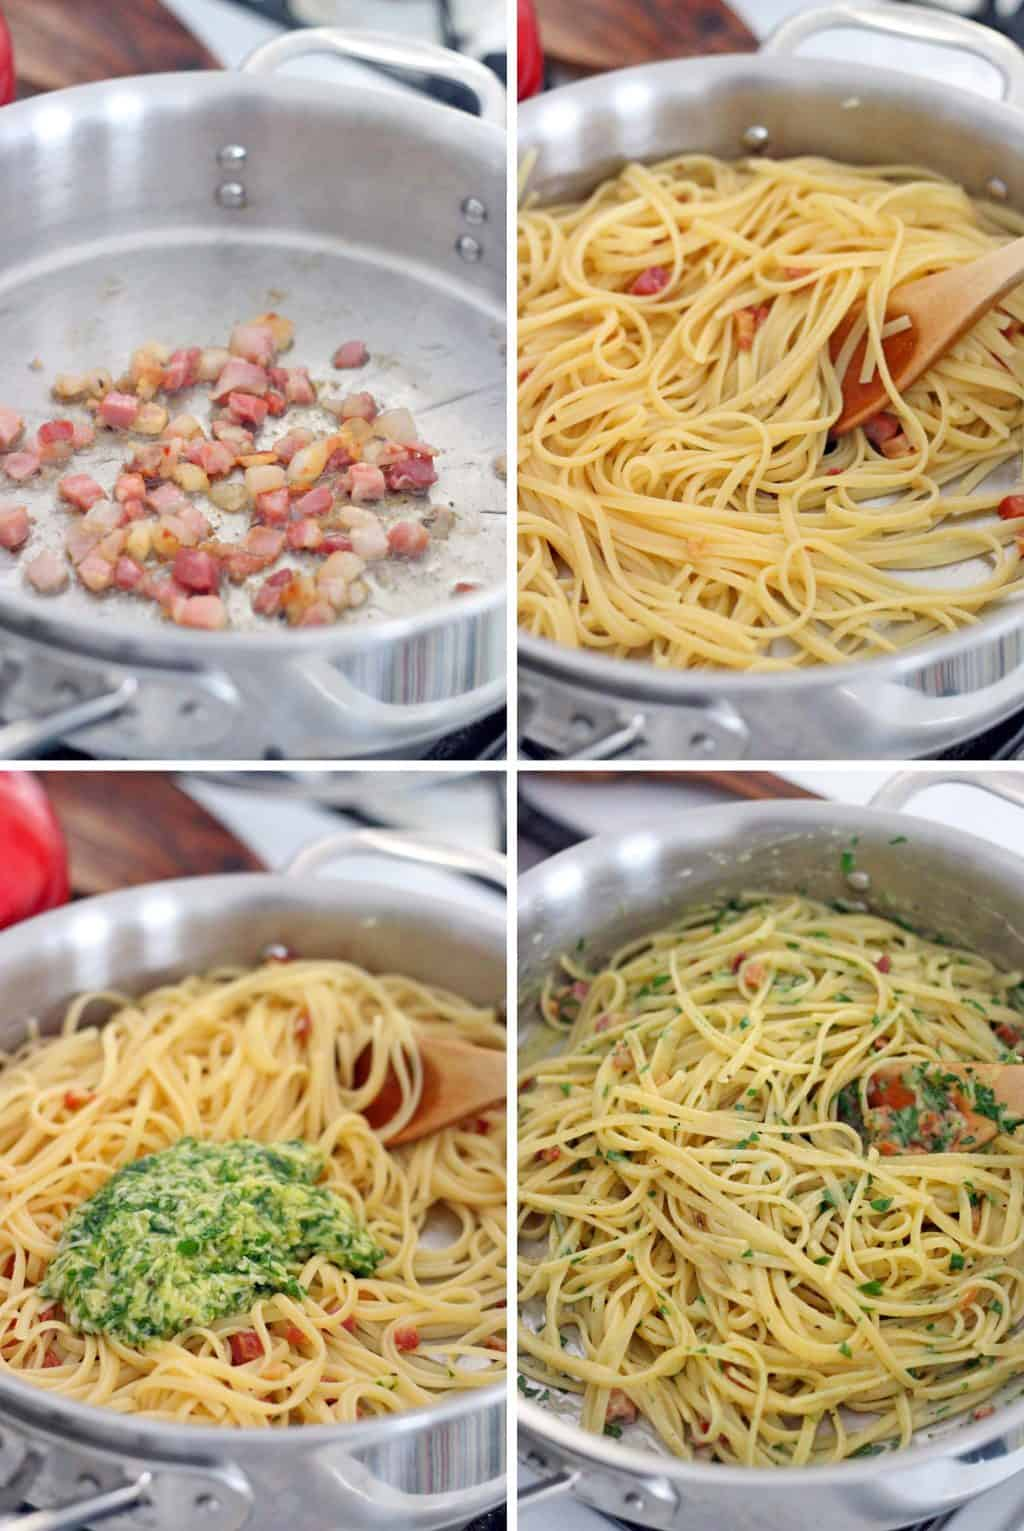 Photo collage showing four photos, each depicting the steps to making Spaghetti alla Carbonara.